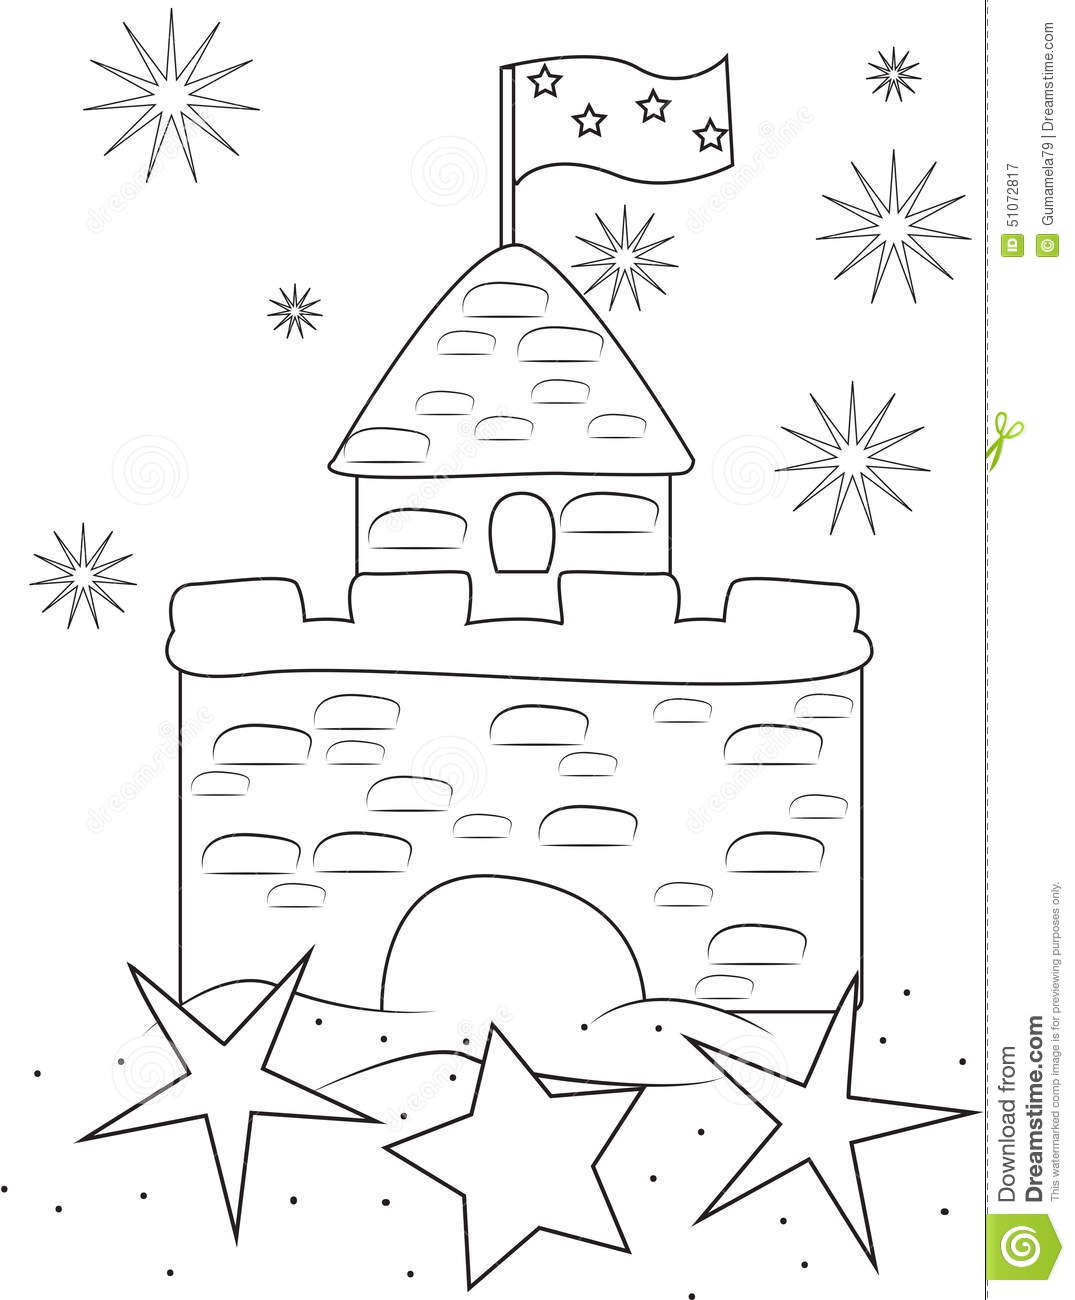 Sand castle coloring page stock illustration. Illustration of ...